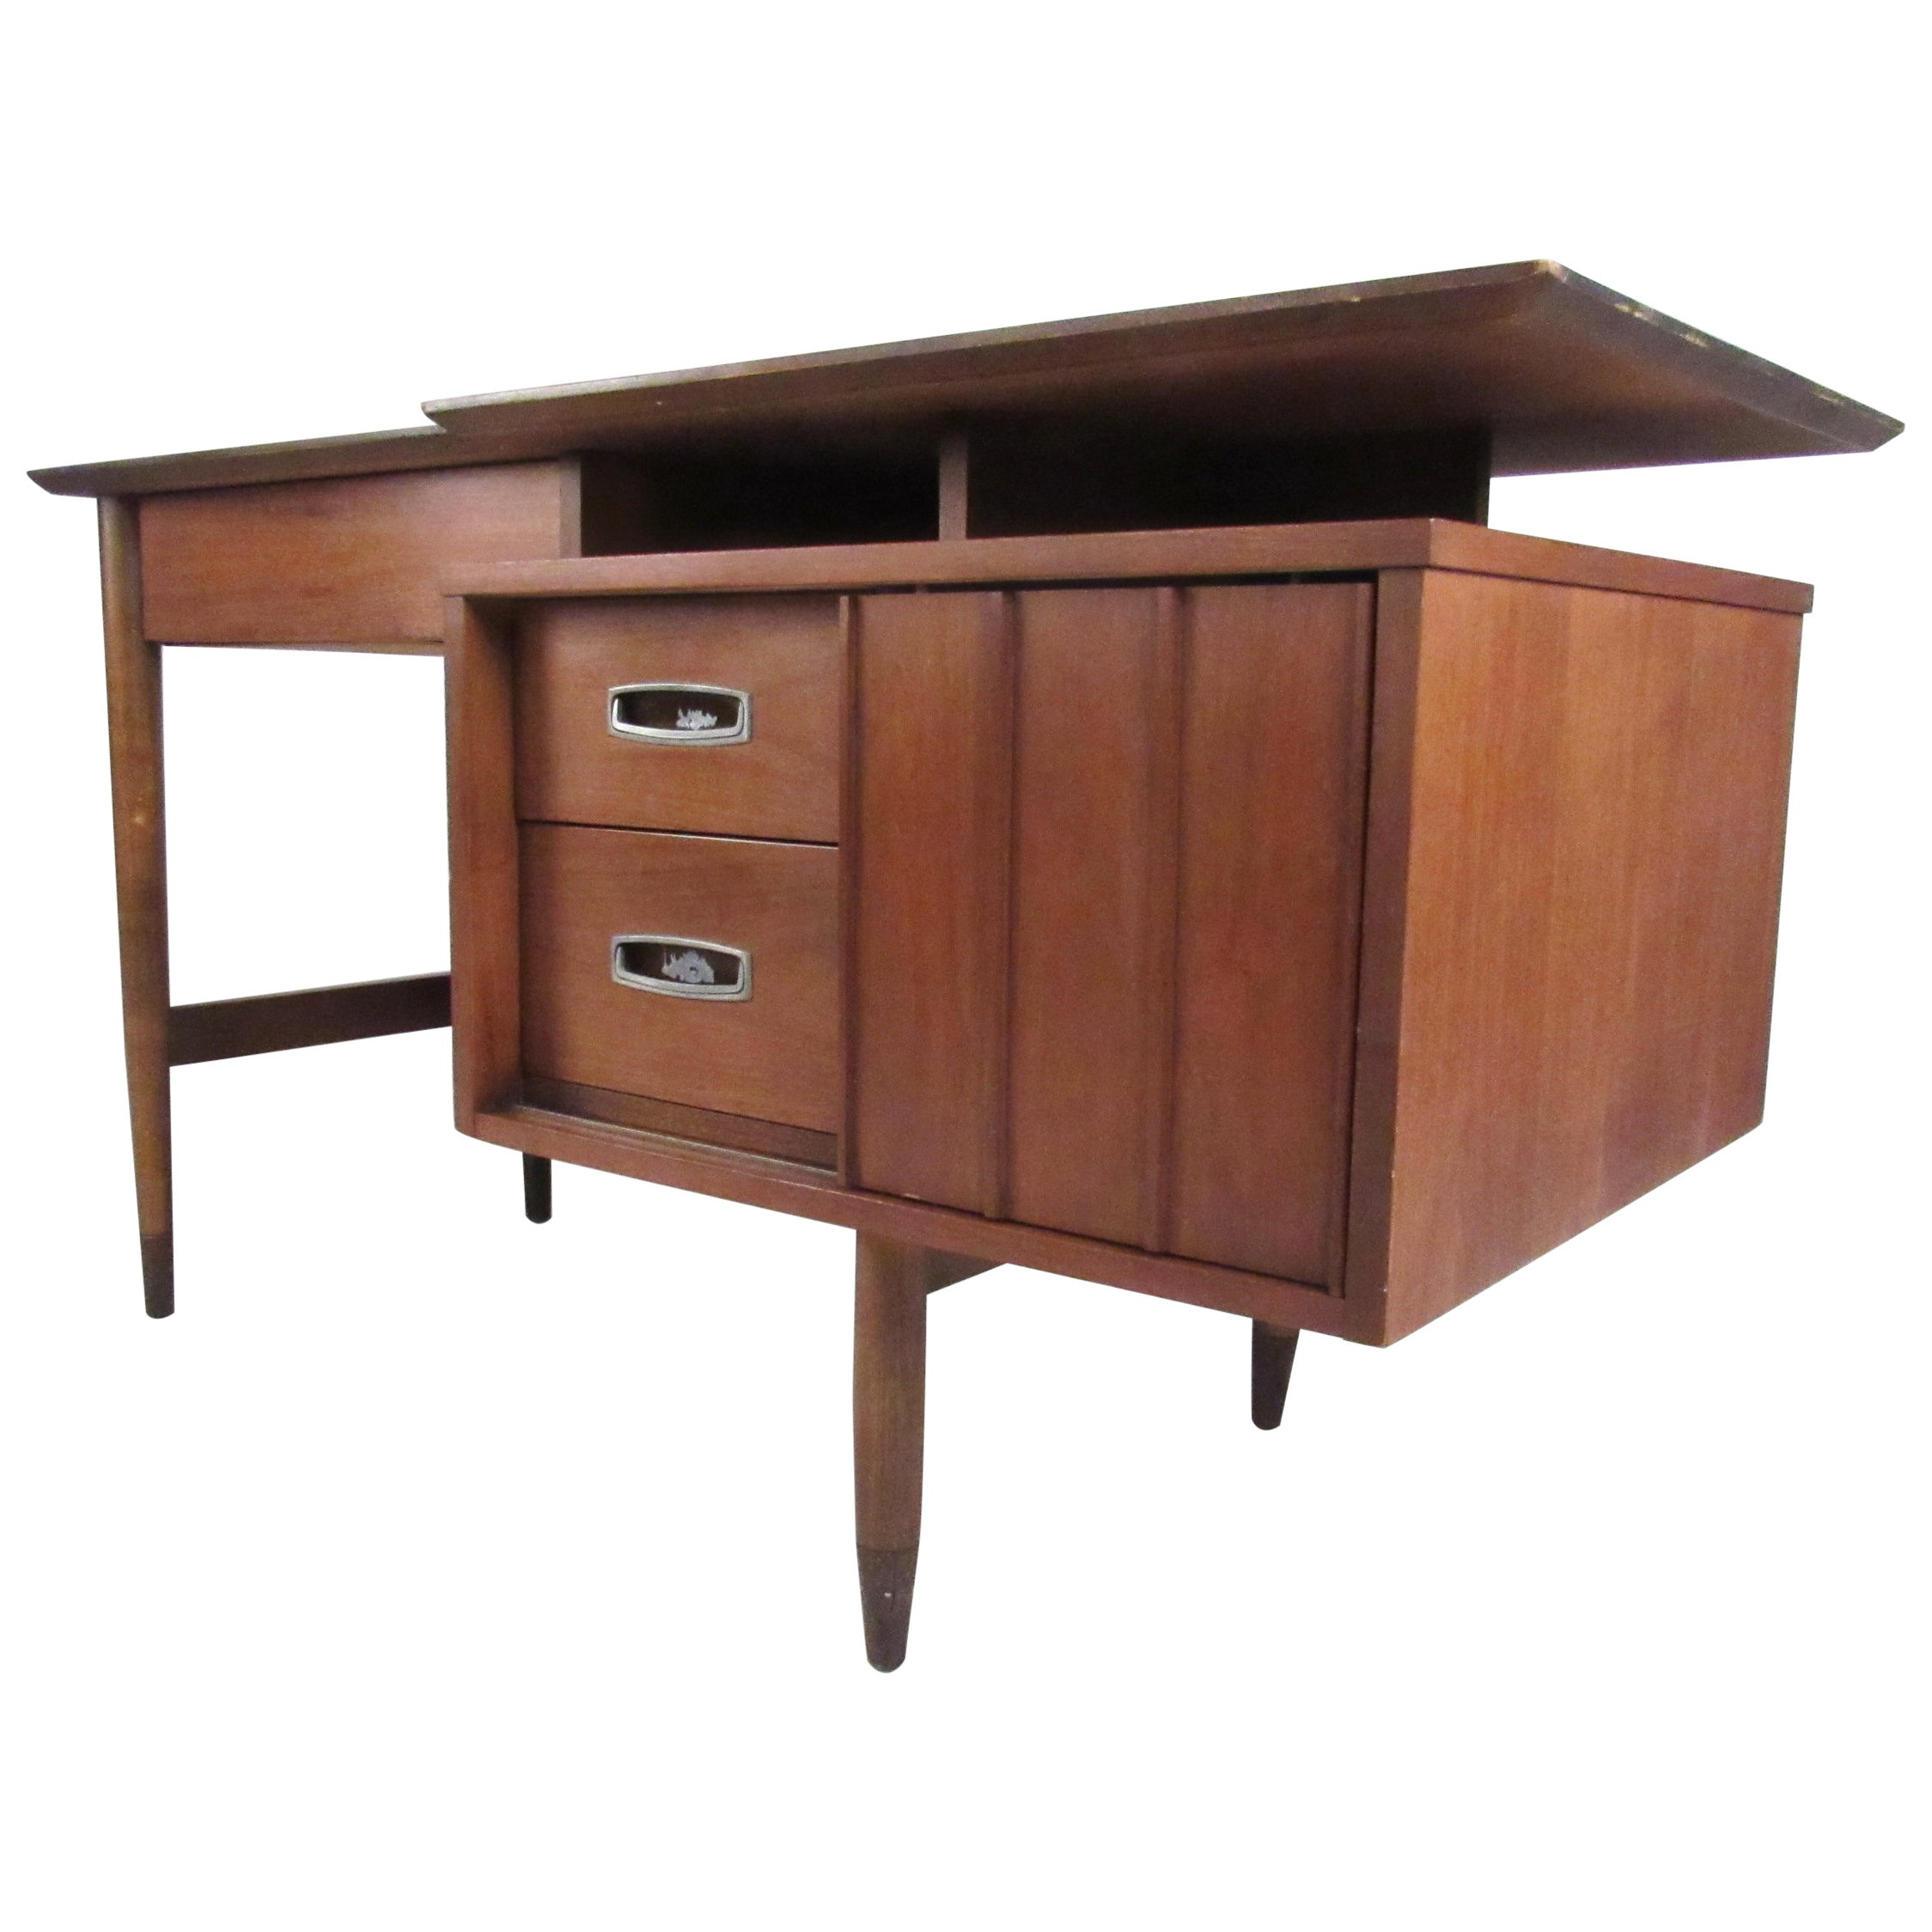 i that j previous unmarked sideboard a is co are but signs inventory the tale tell furniture recognize pin no there rishel from stickley k desk